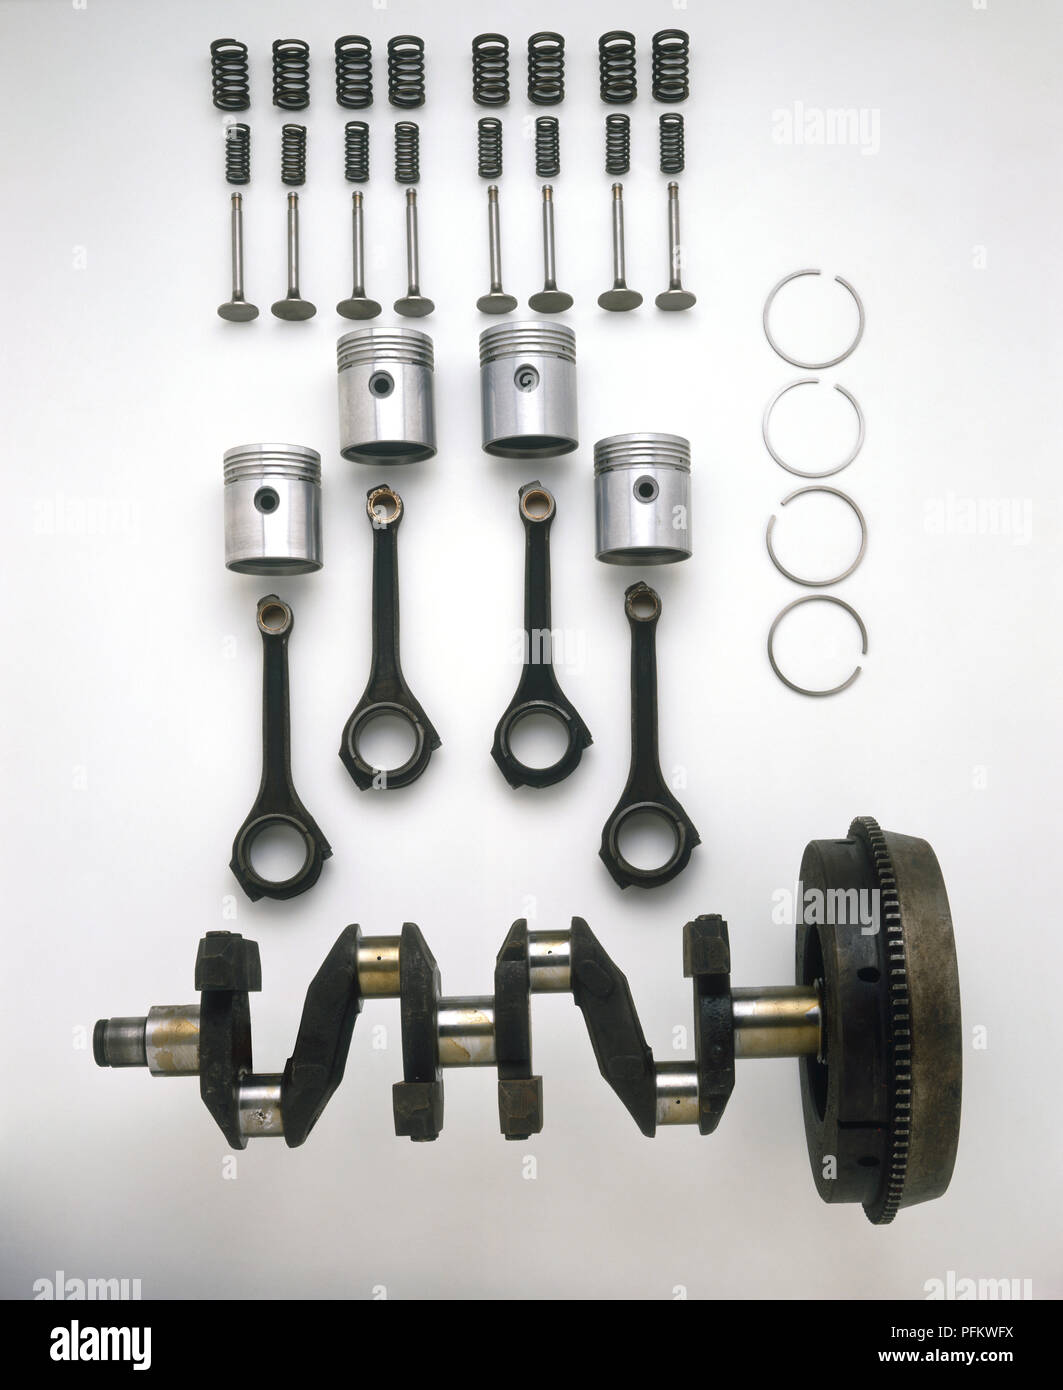 Car Engine Parts Including Valves Pistons Connecting Rods And